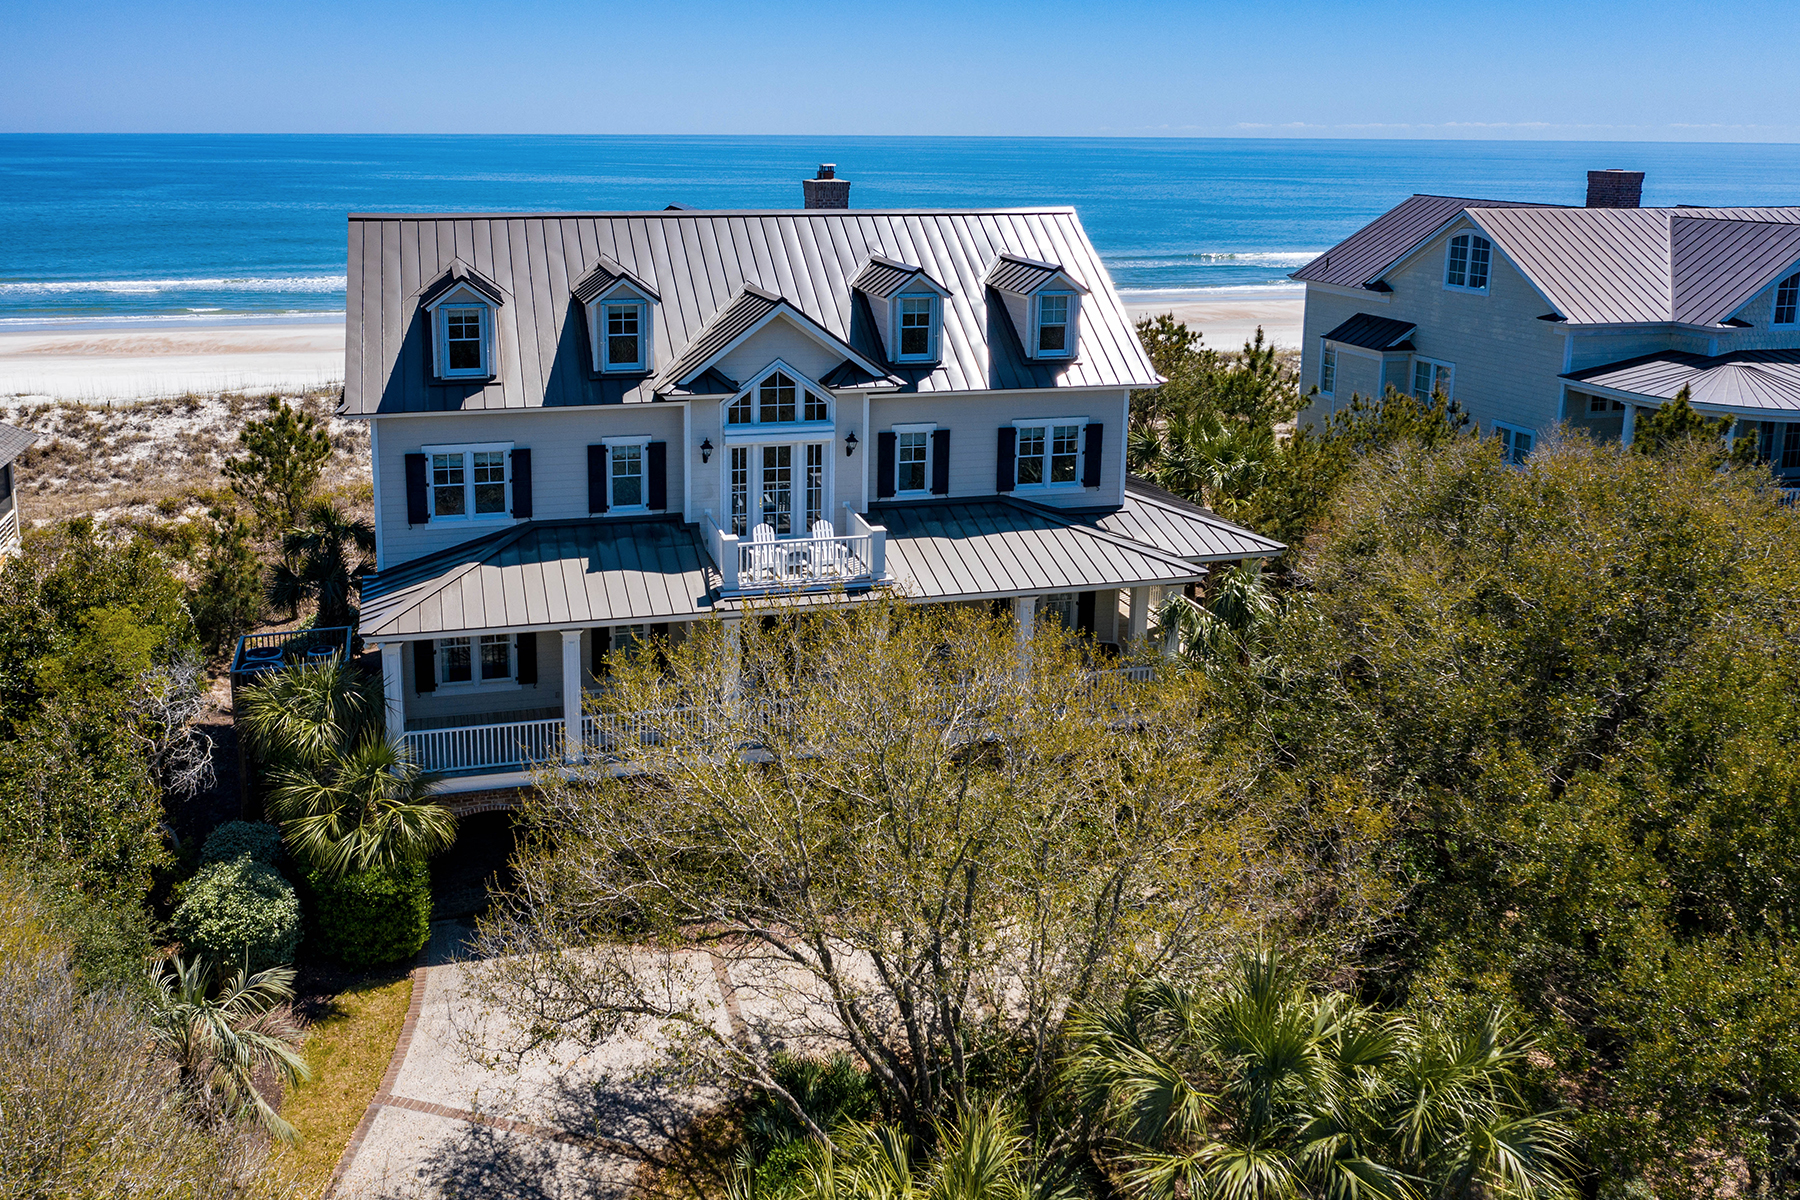 Single Family Homes for Active at 727 Beach Bridge Road Pawleys Island, South Carolina 29585 United States